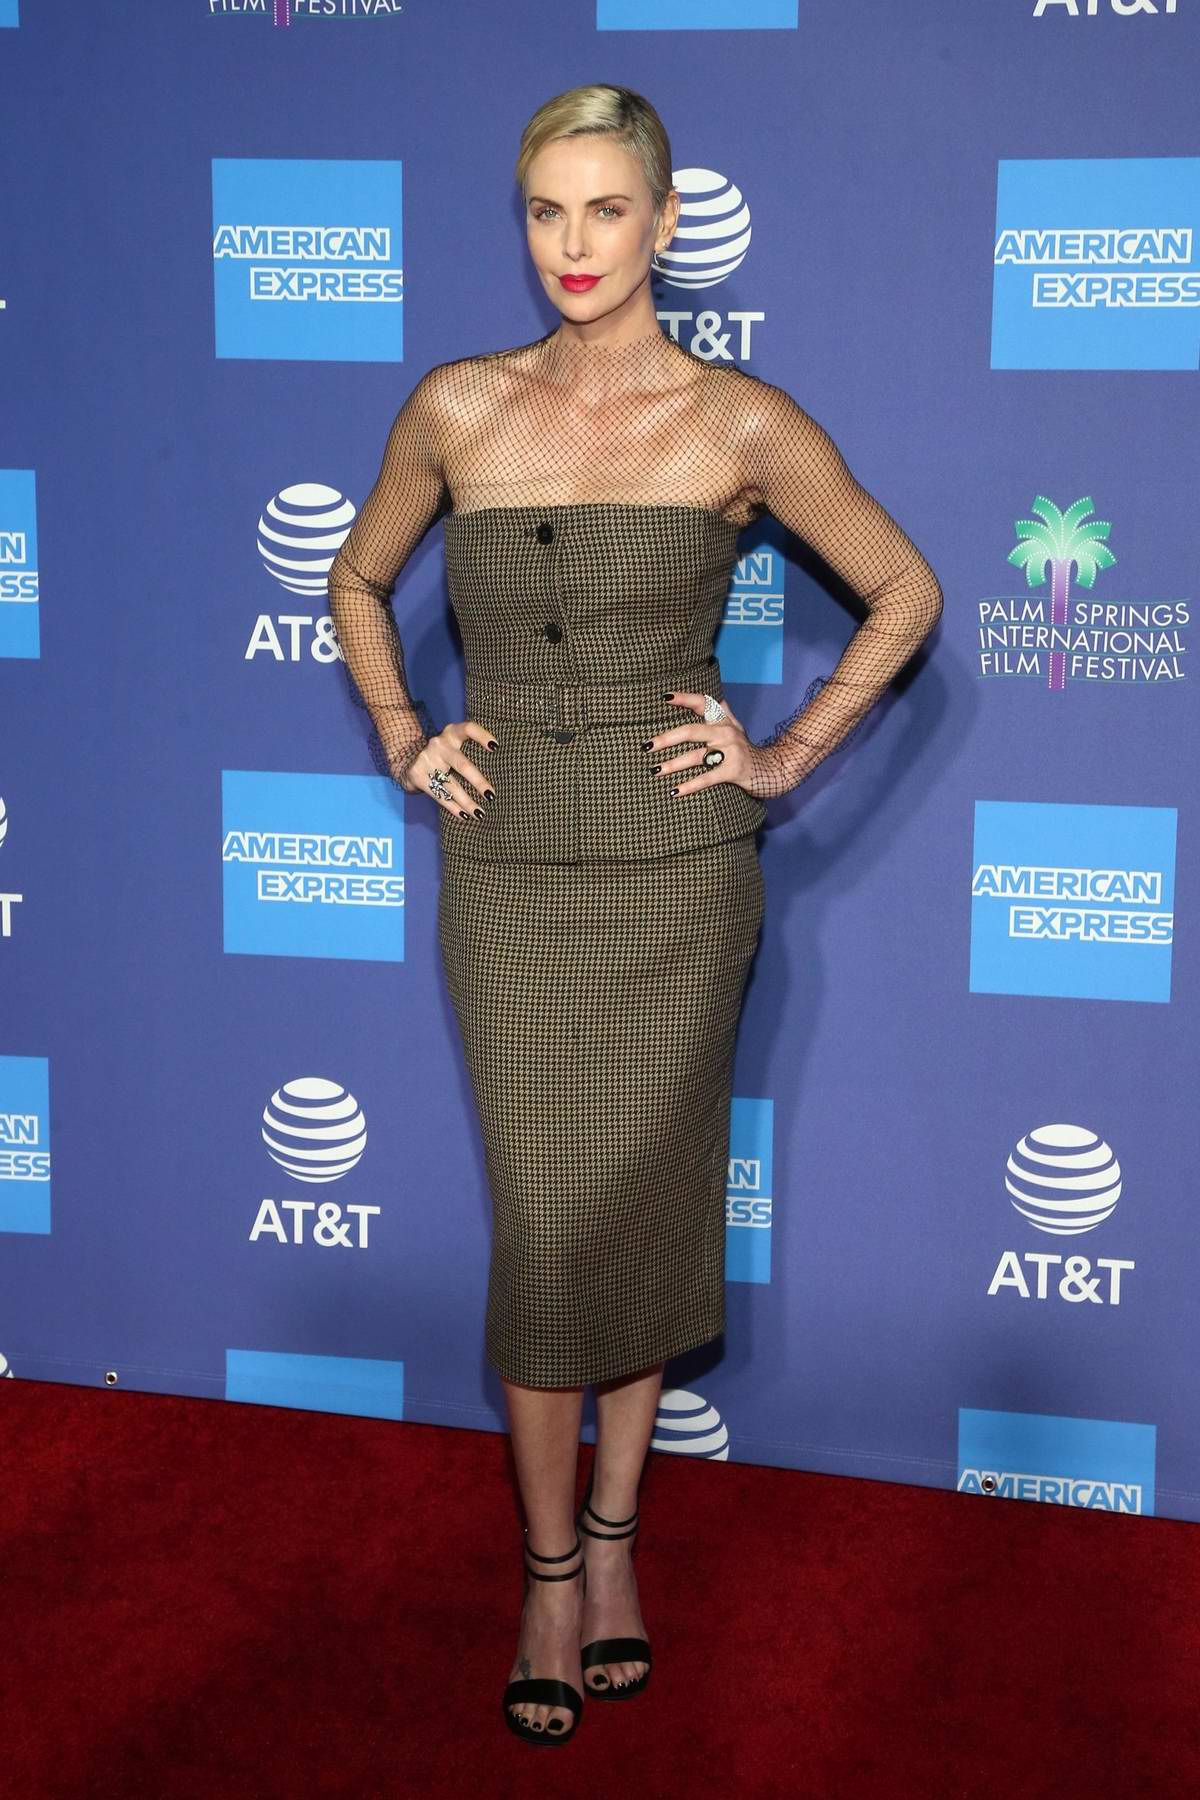 Charlize Theron attends the 31st Annual Palm Springs International Film Festival Gala in Palm Springs, California